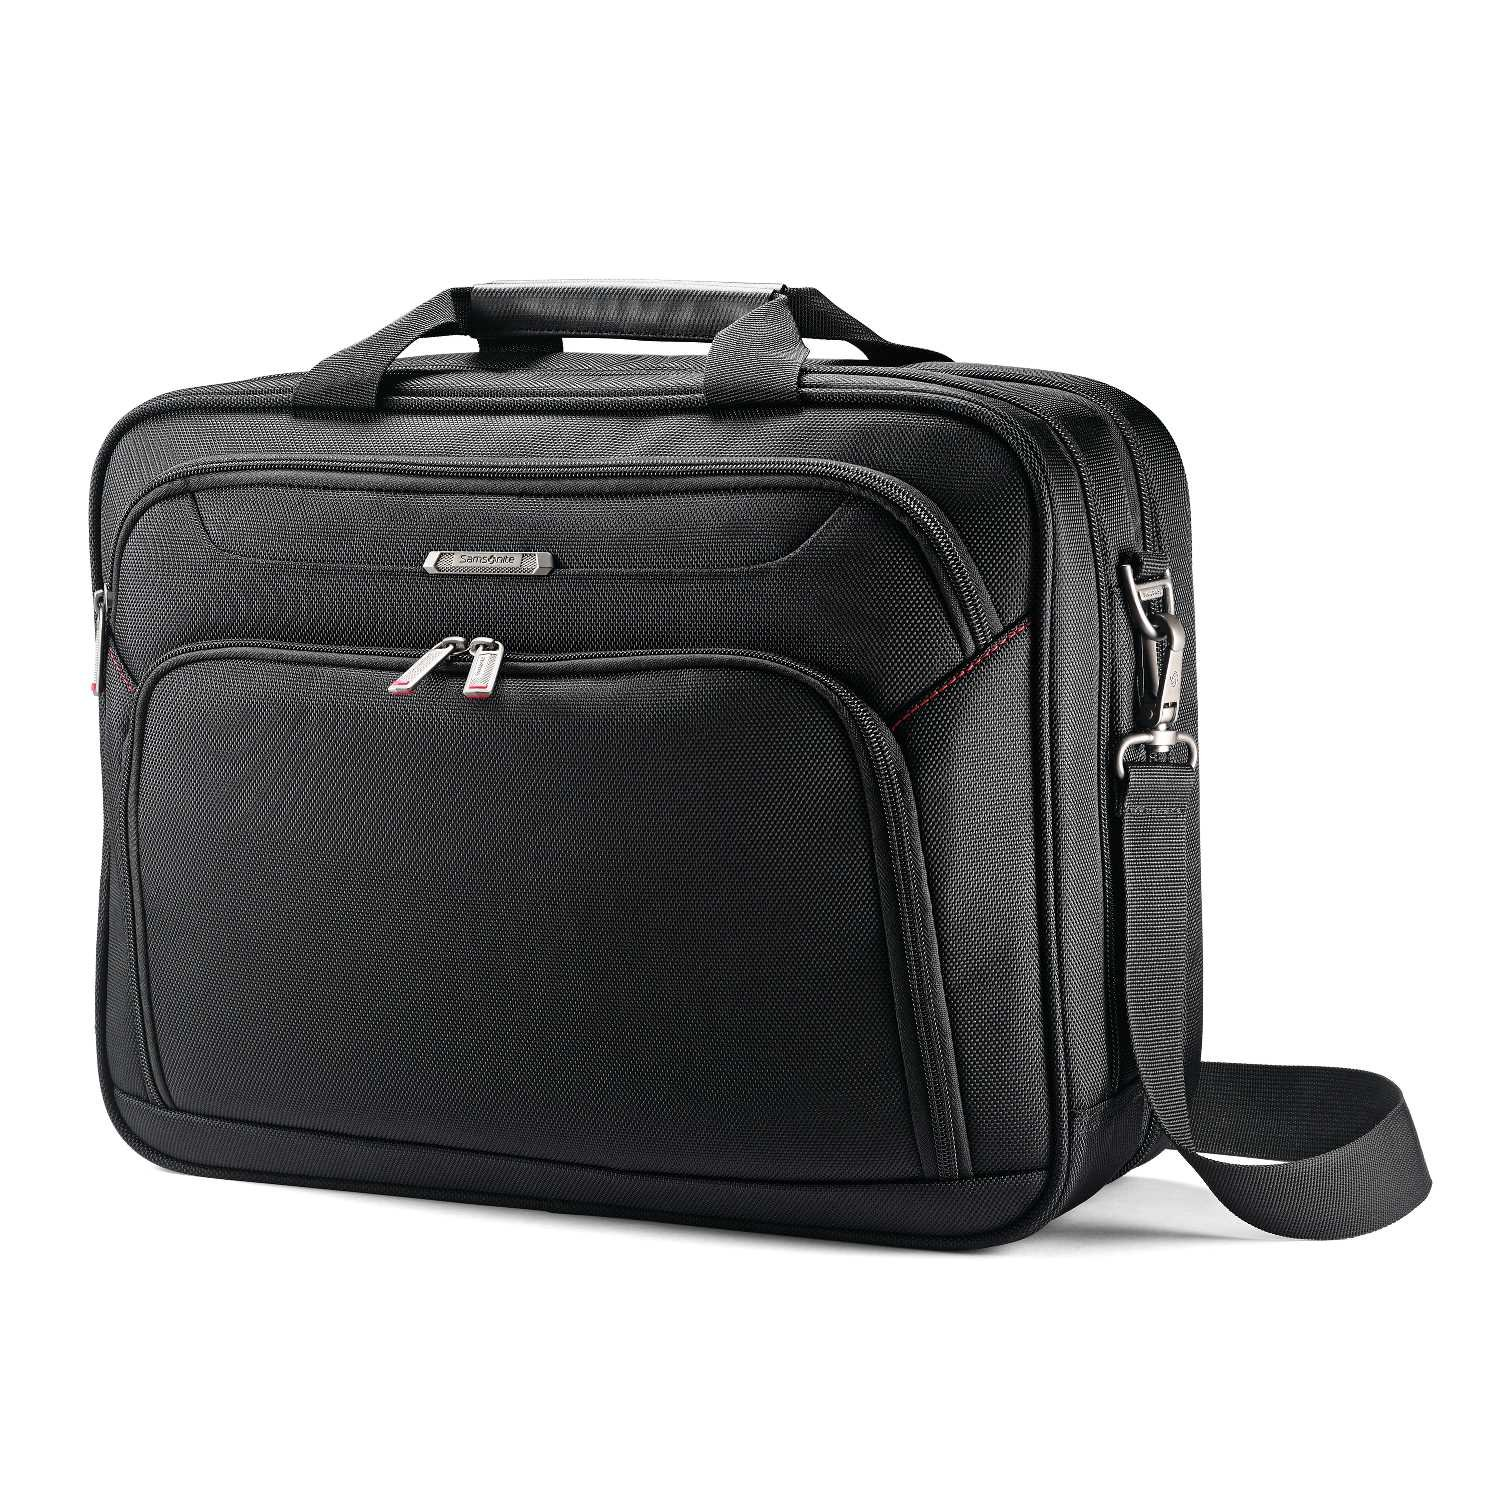 Samsonite Xenon 3.0 Two Gusset Brief-Checkpoint Friendly Laptop Bag Black One Size